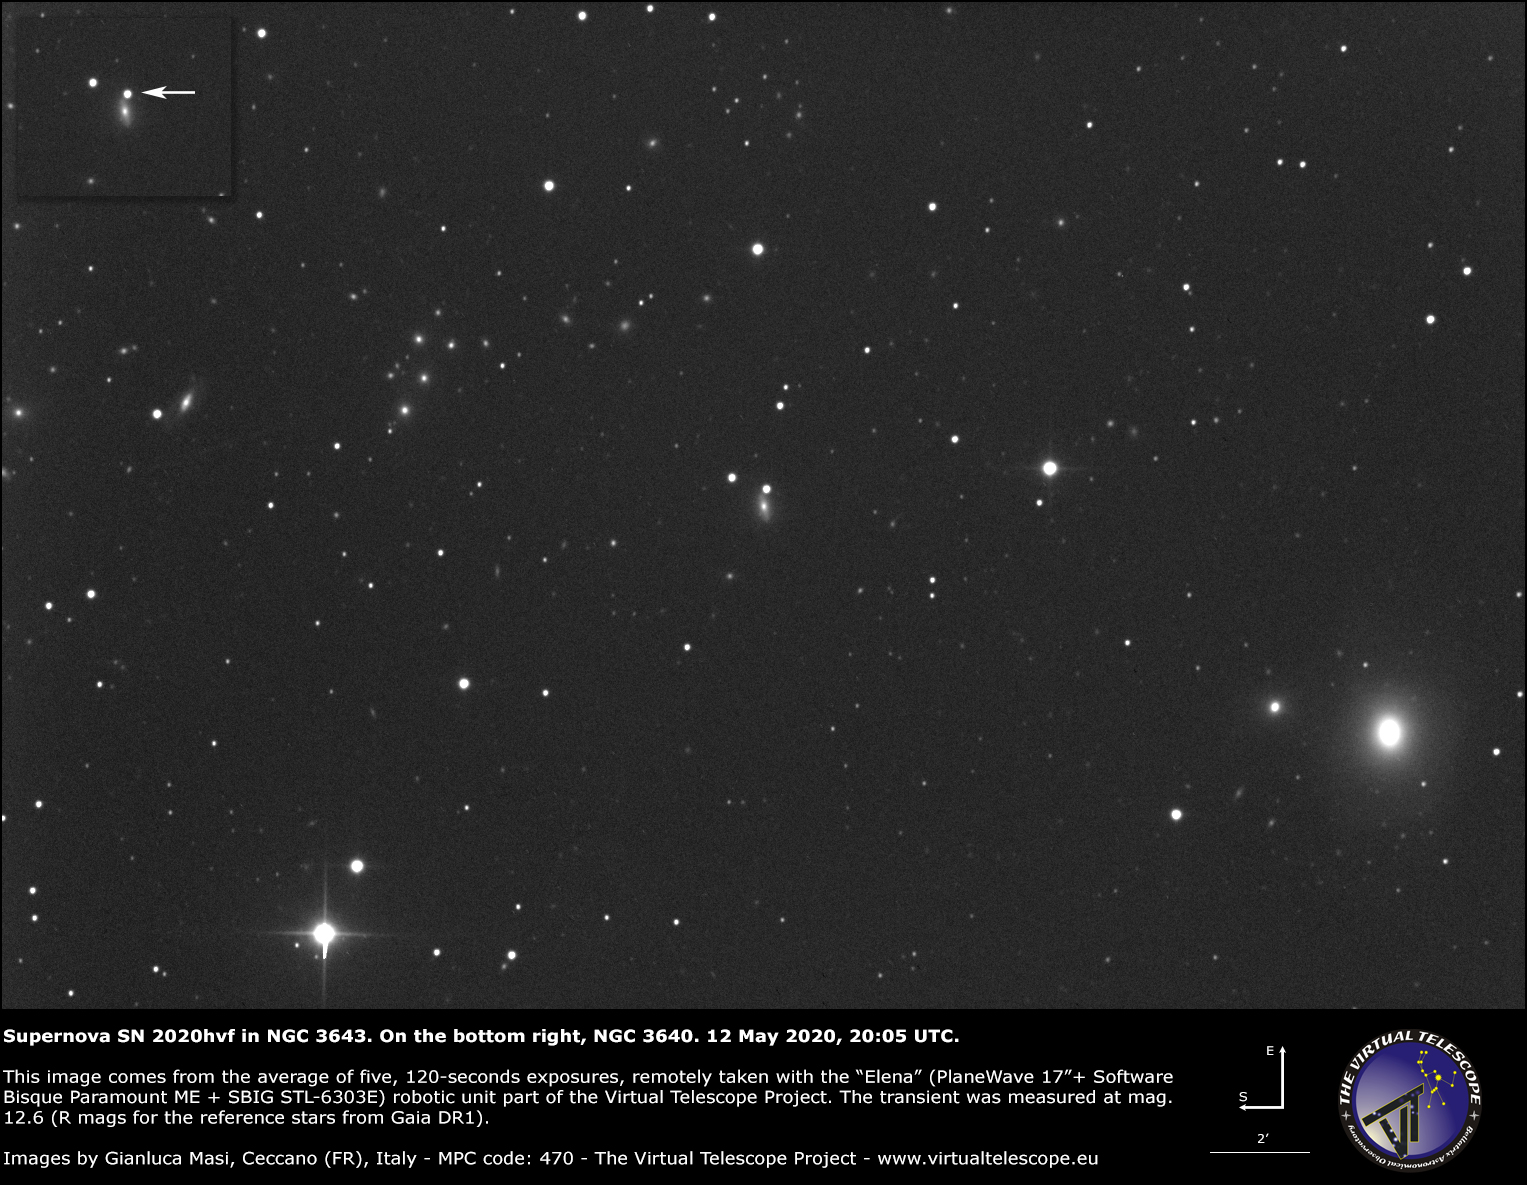 NGC 3643 and the bright supernova SN 2020hvf - 12 May 2020